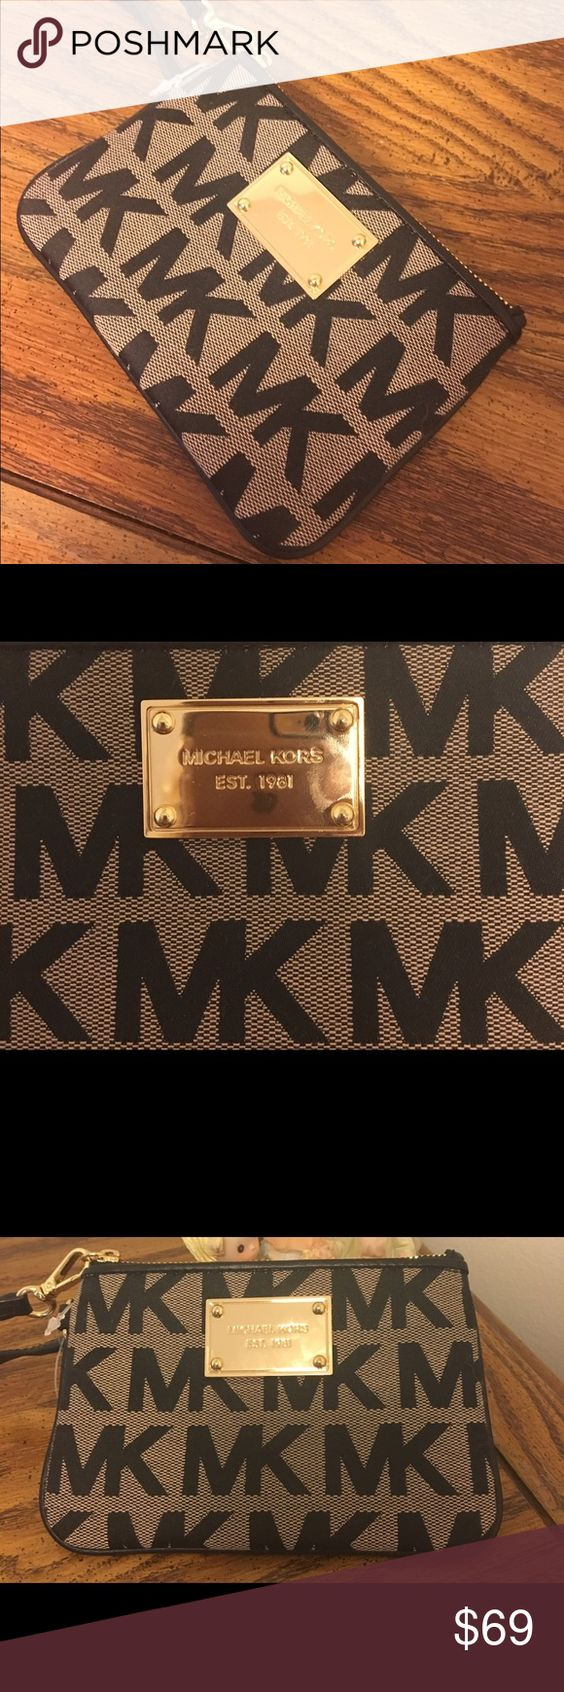 "SALE!! NWOT Michael Kors black & beige wristlet 1 DAY SALE!!! Michael Kors beige & black wristlet with black leather trim & gold hardware on the front of the purse.  Perfect for any occasion!! Measures 6"" in length & 4"" in height Michael Kors Bags"